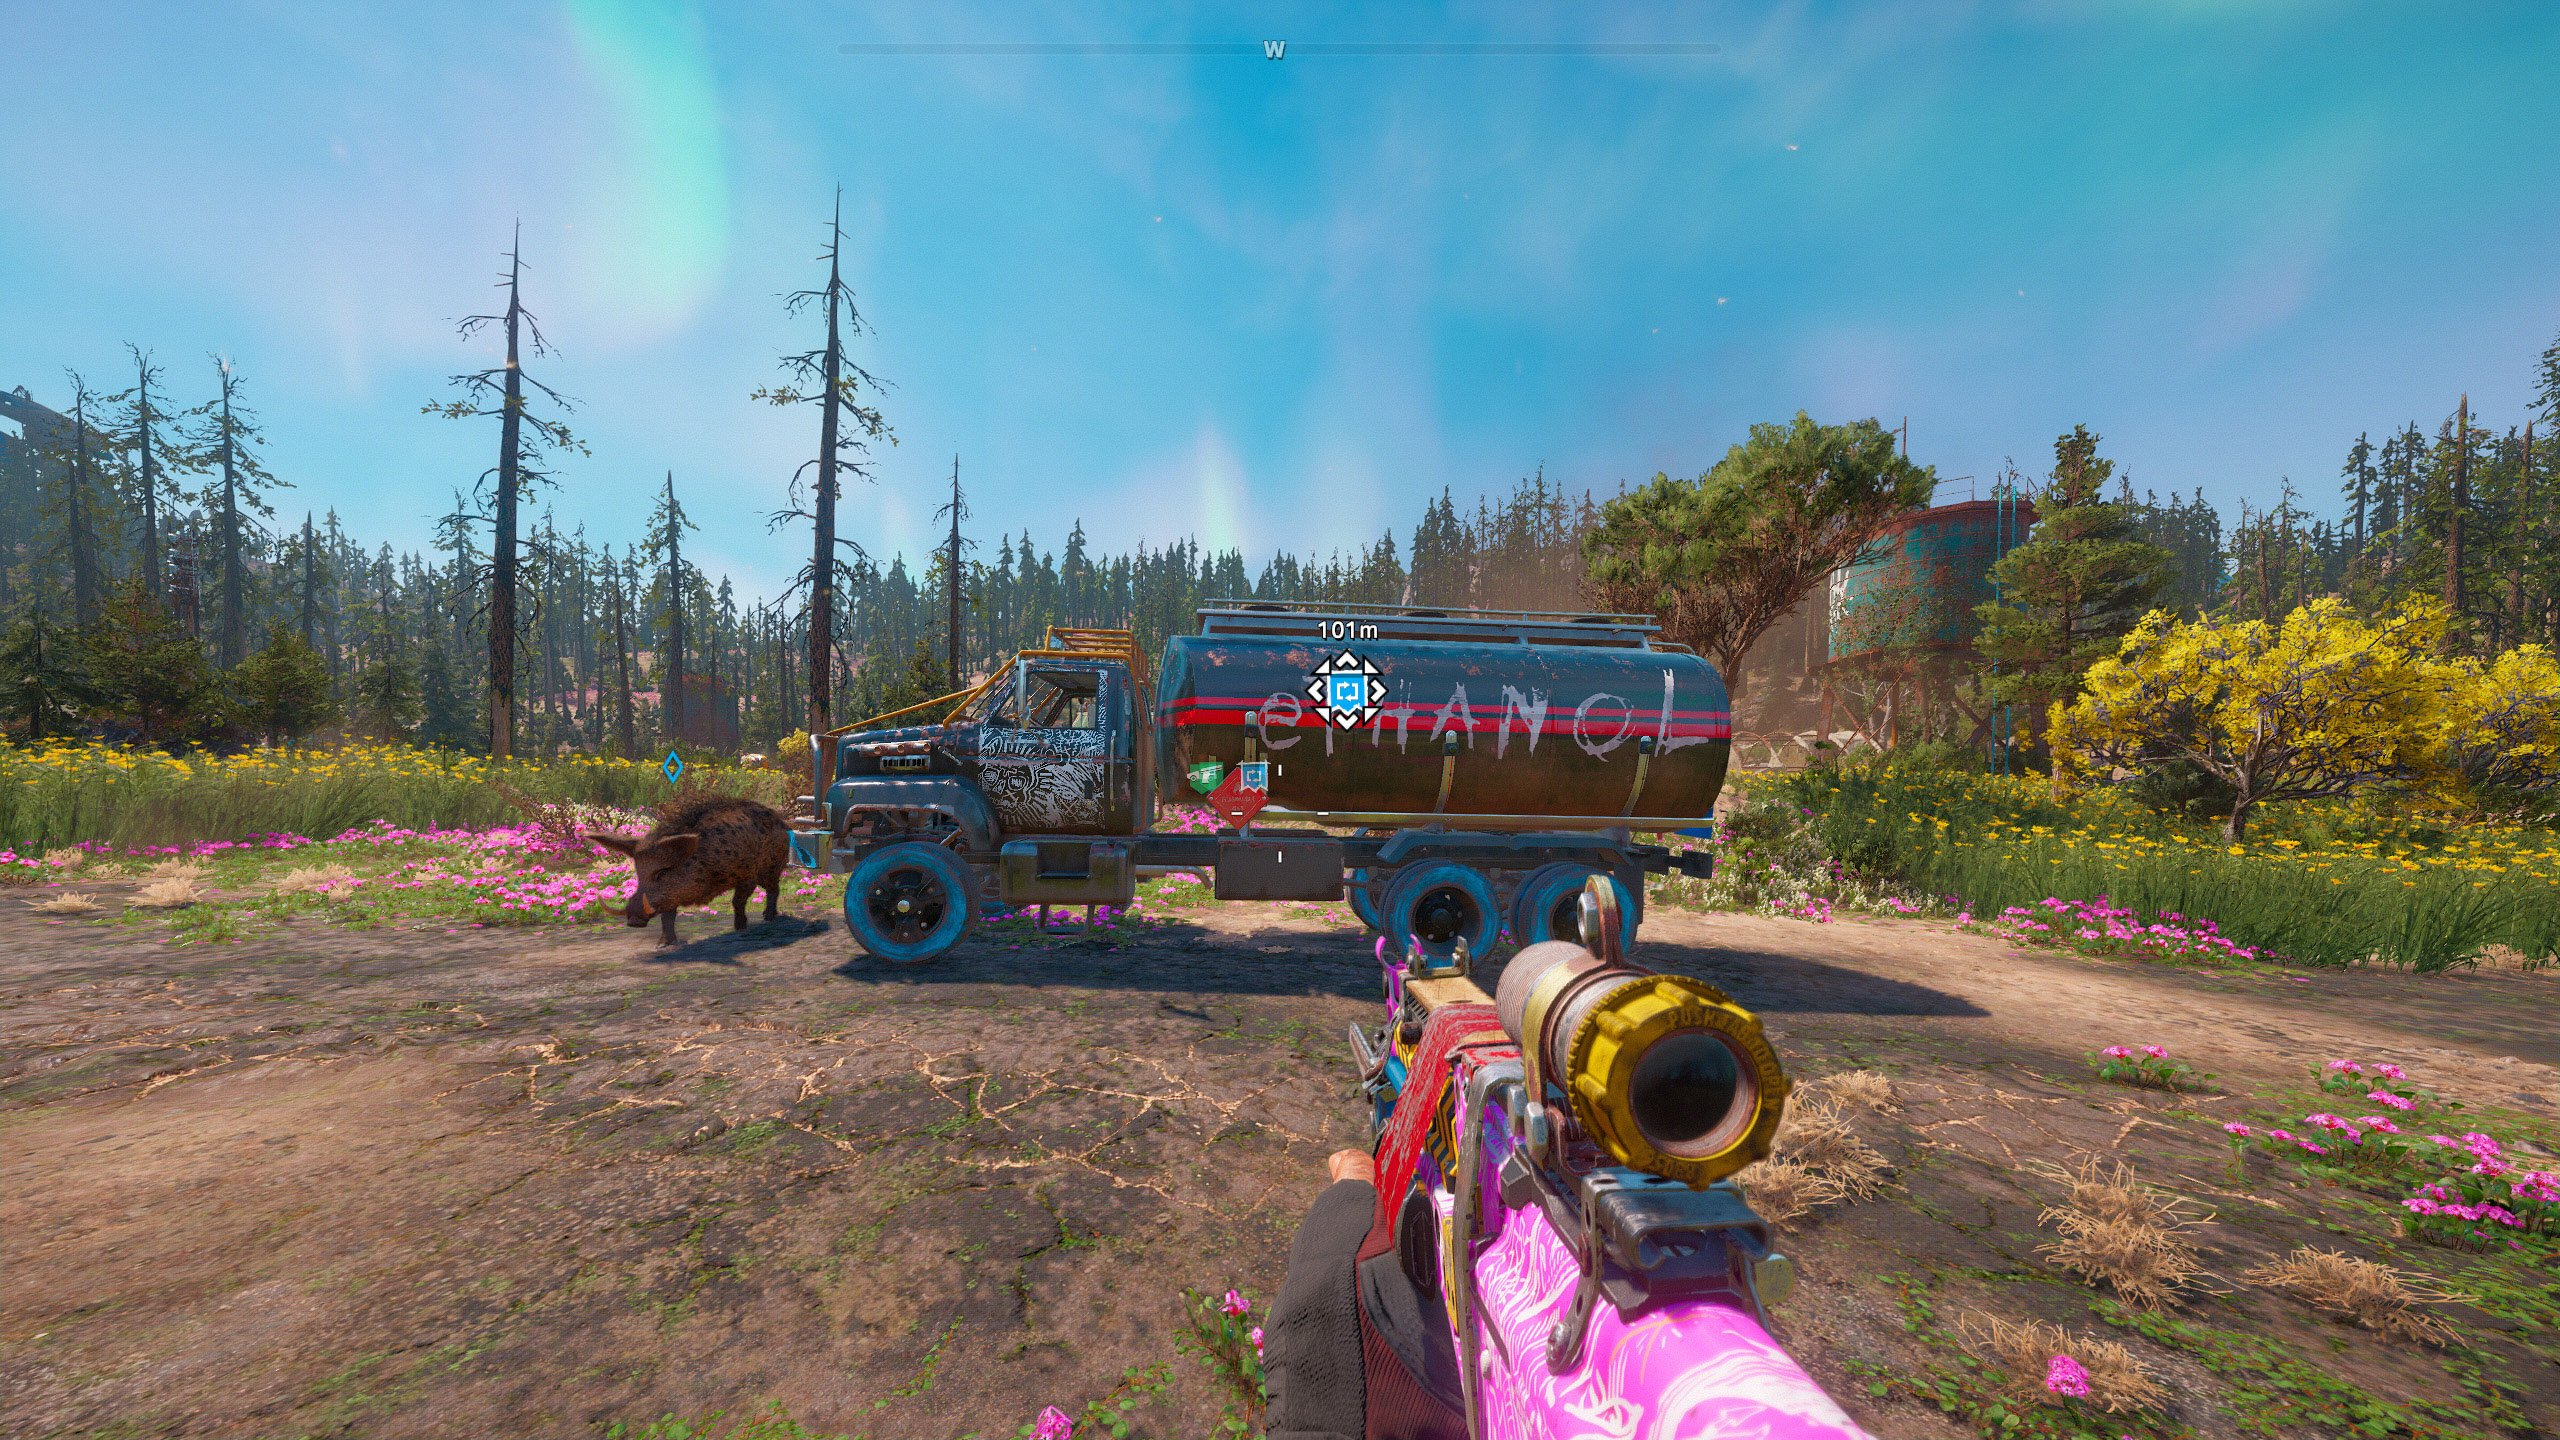 Get Ethanol from Tanker Trucks in Far Cry New Dawn